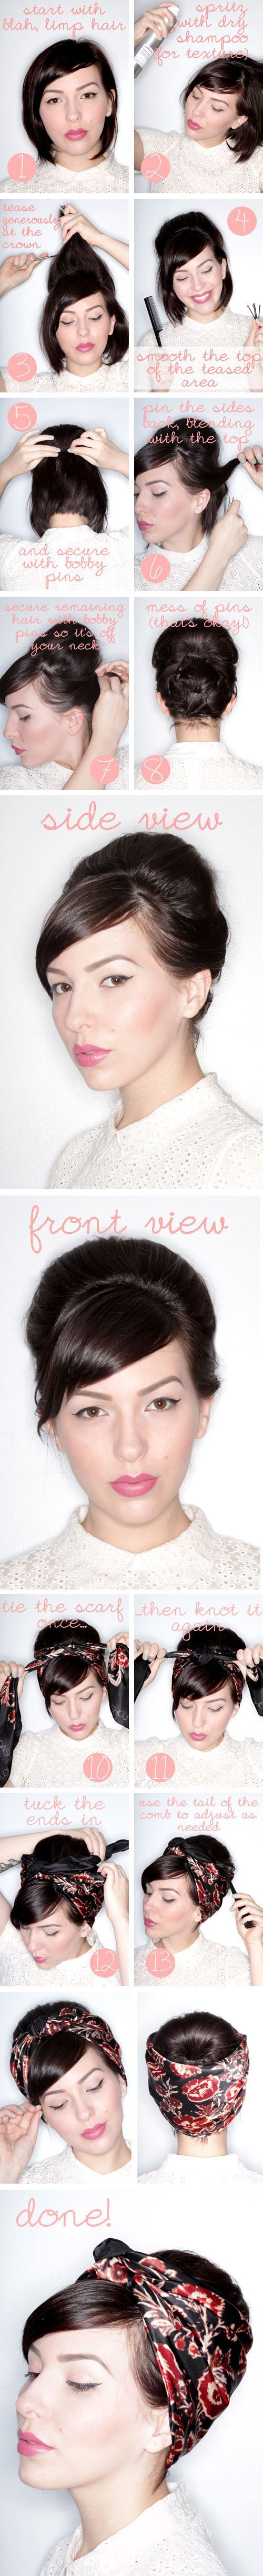 hairstyles for short hair! If you need some variety with your short hair? Try out these great ideas. #hair #shorthair